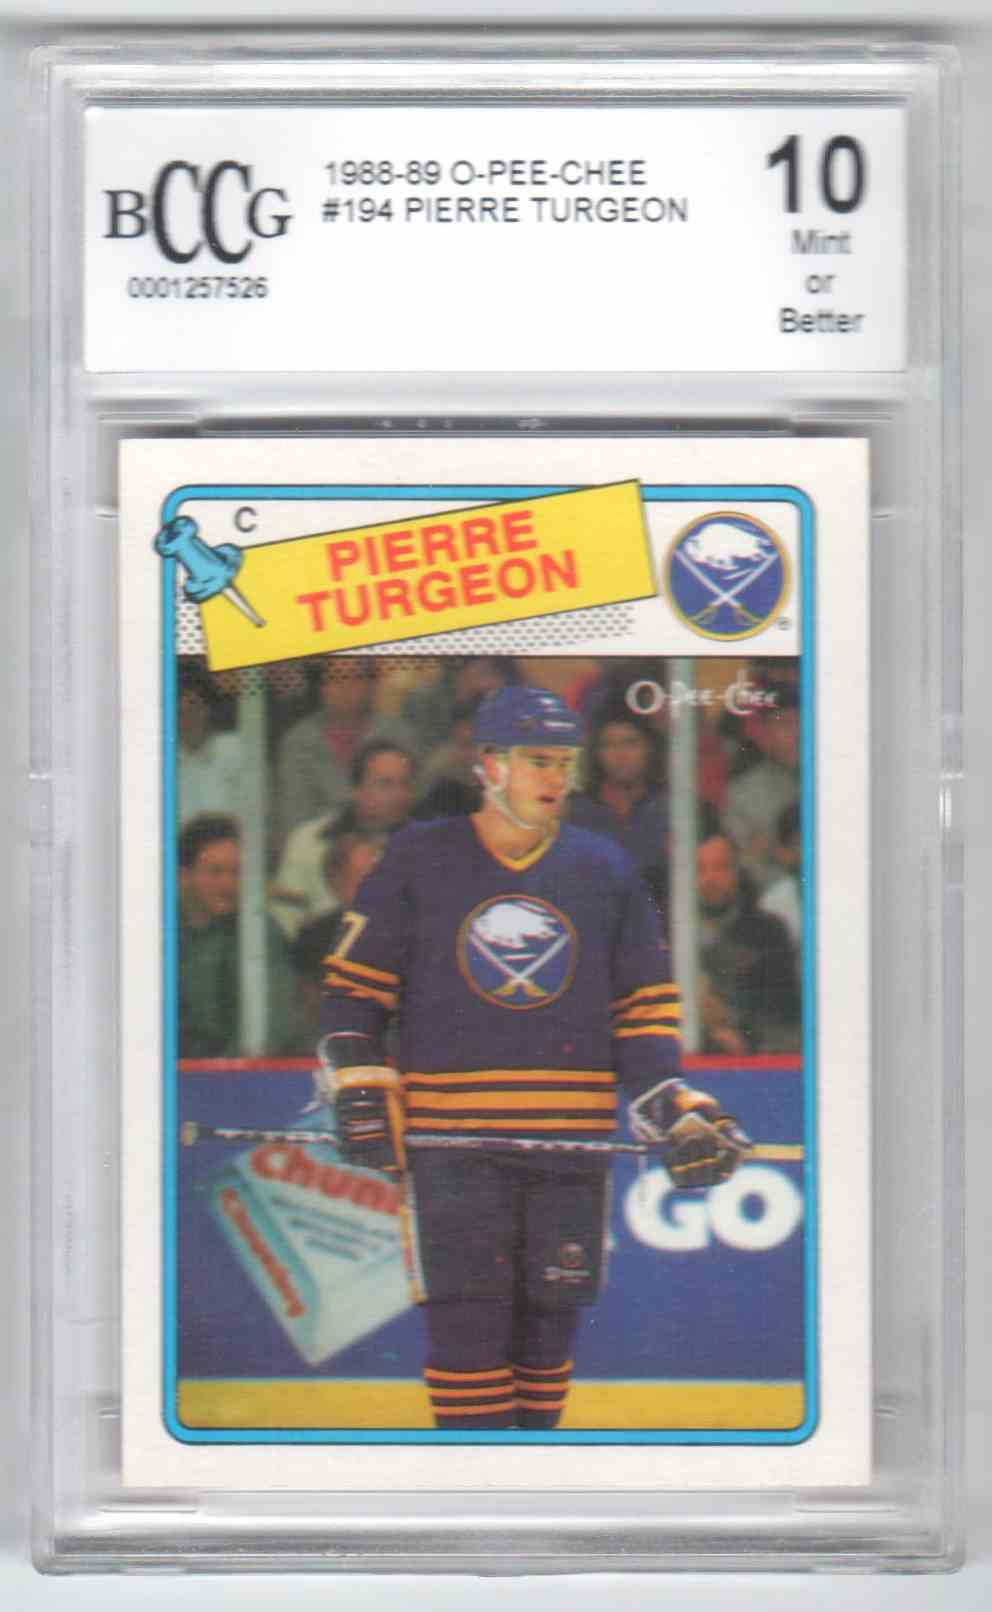 1988-89 O-Pee-Chee Pierre Turgeon #194 card front image